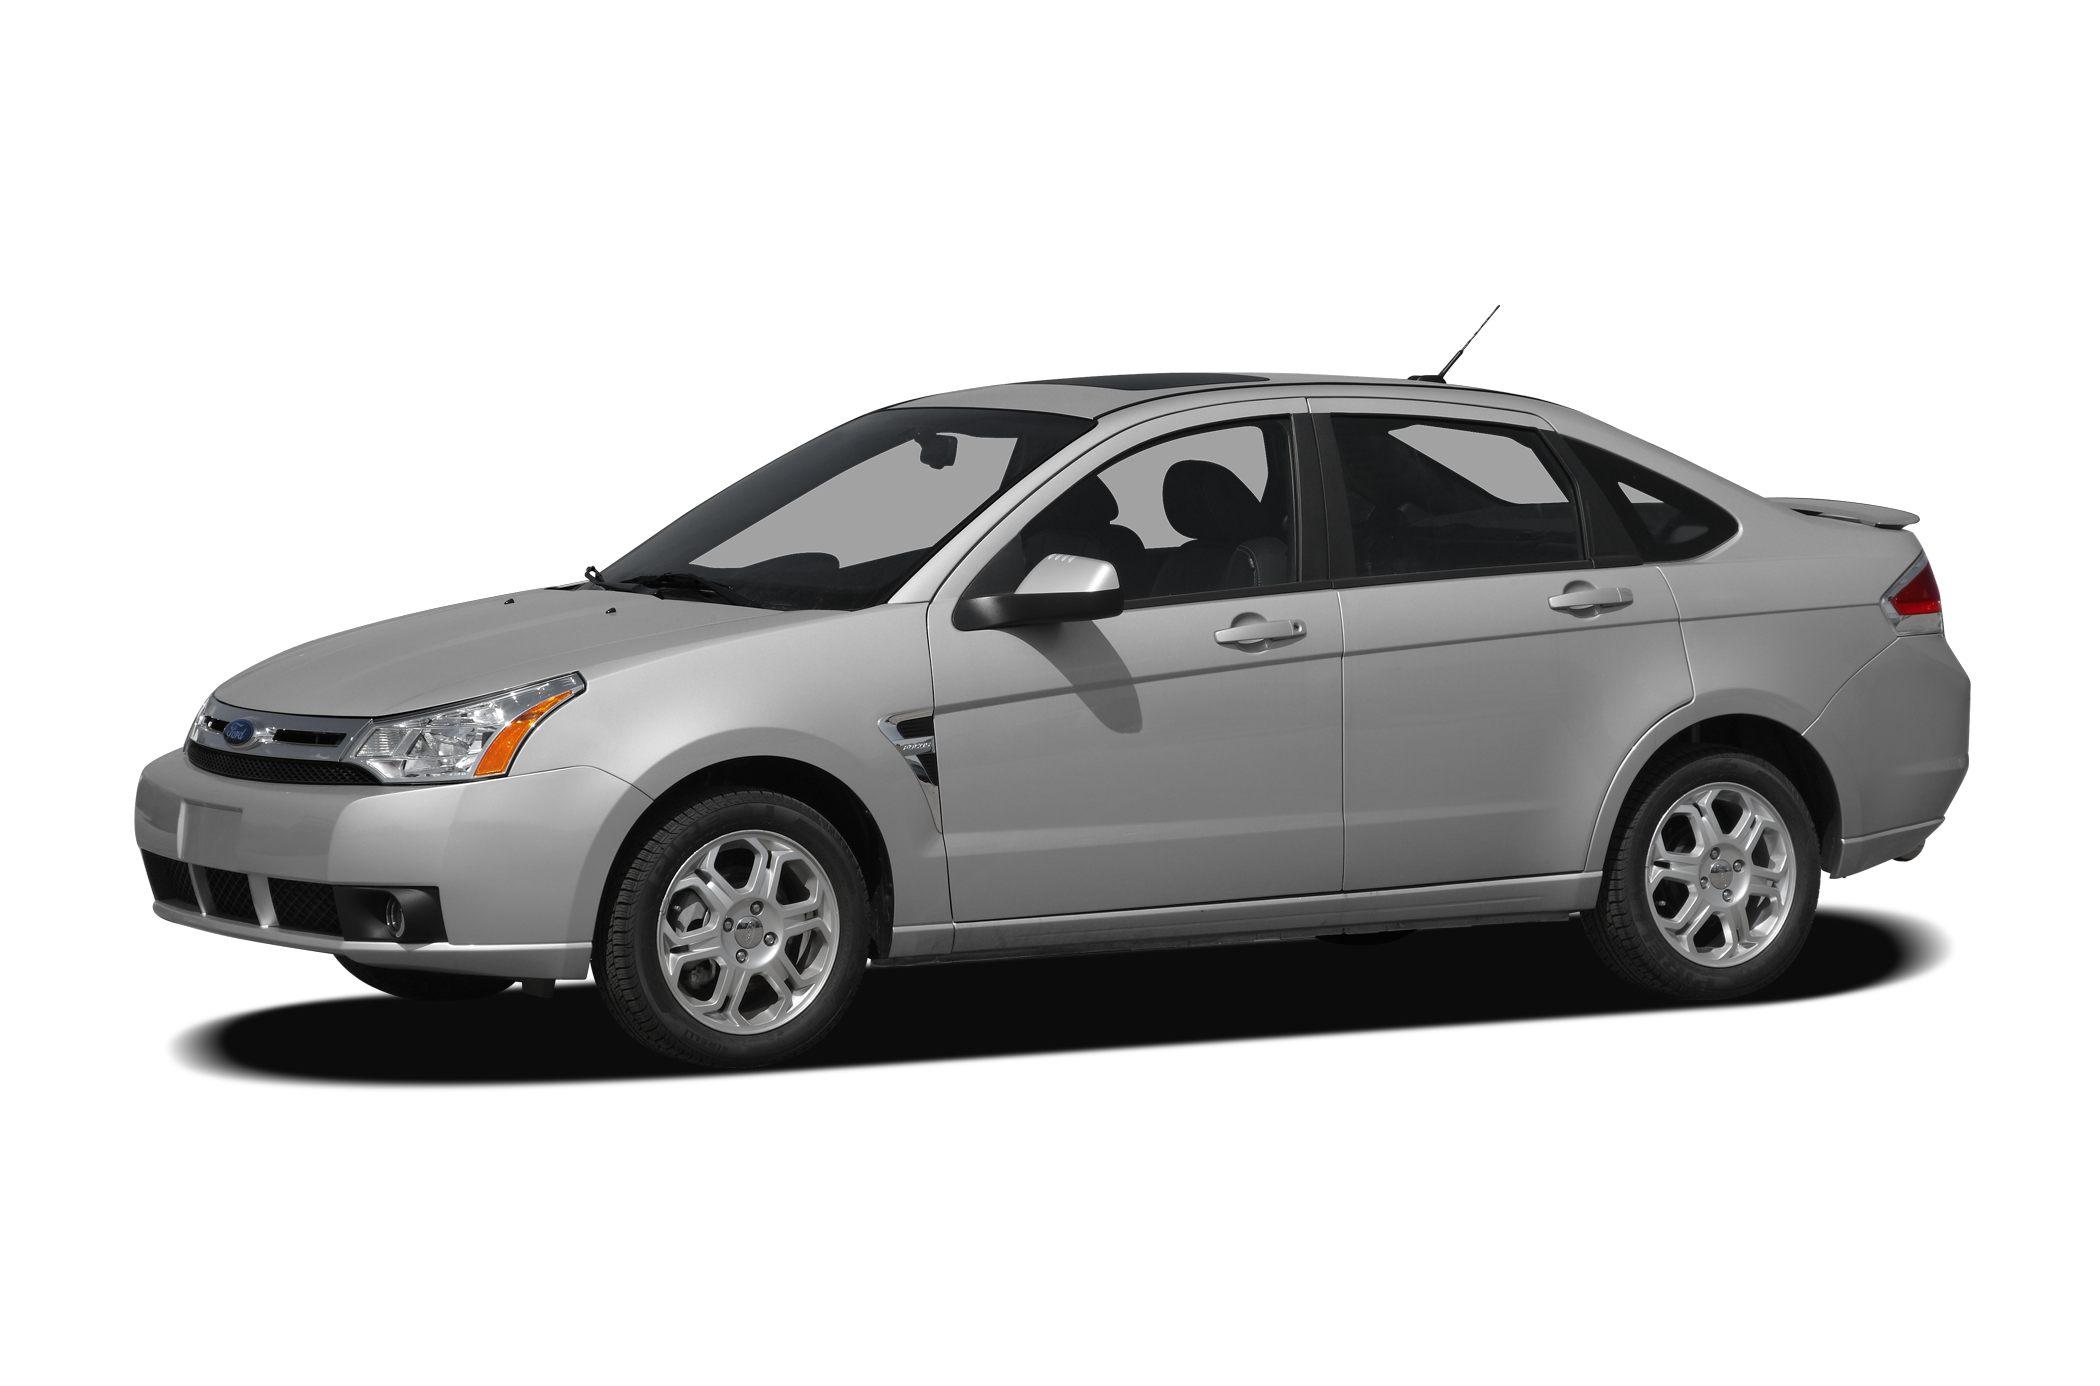 2008 Ford Focus S Coupe for sale in Brunswick for $5,885 with 106,934 miles